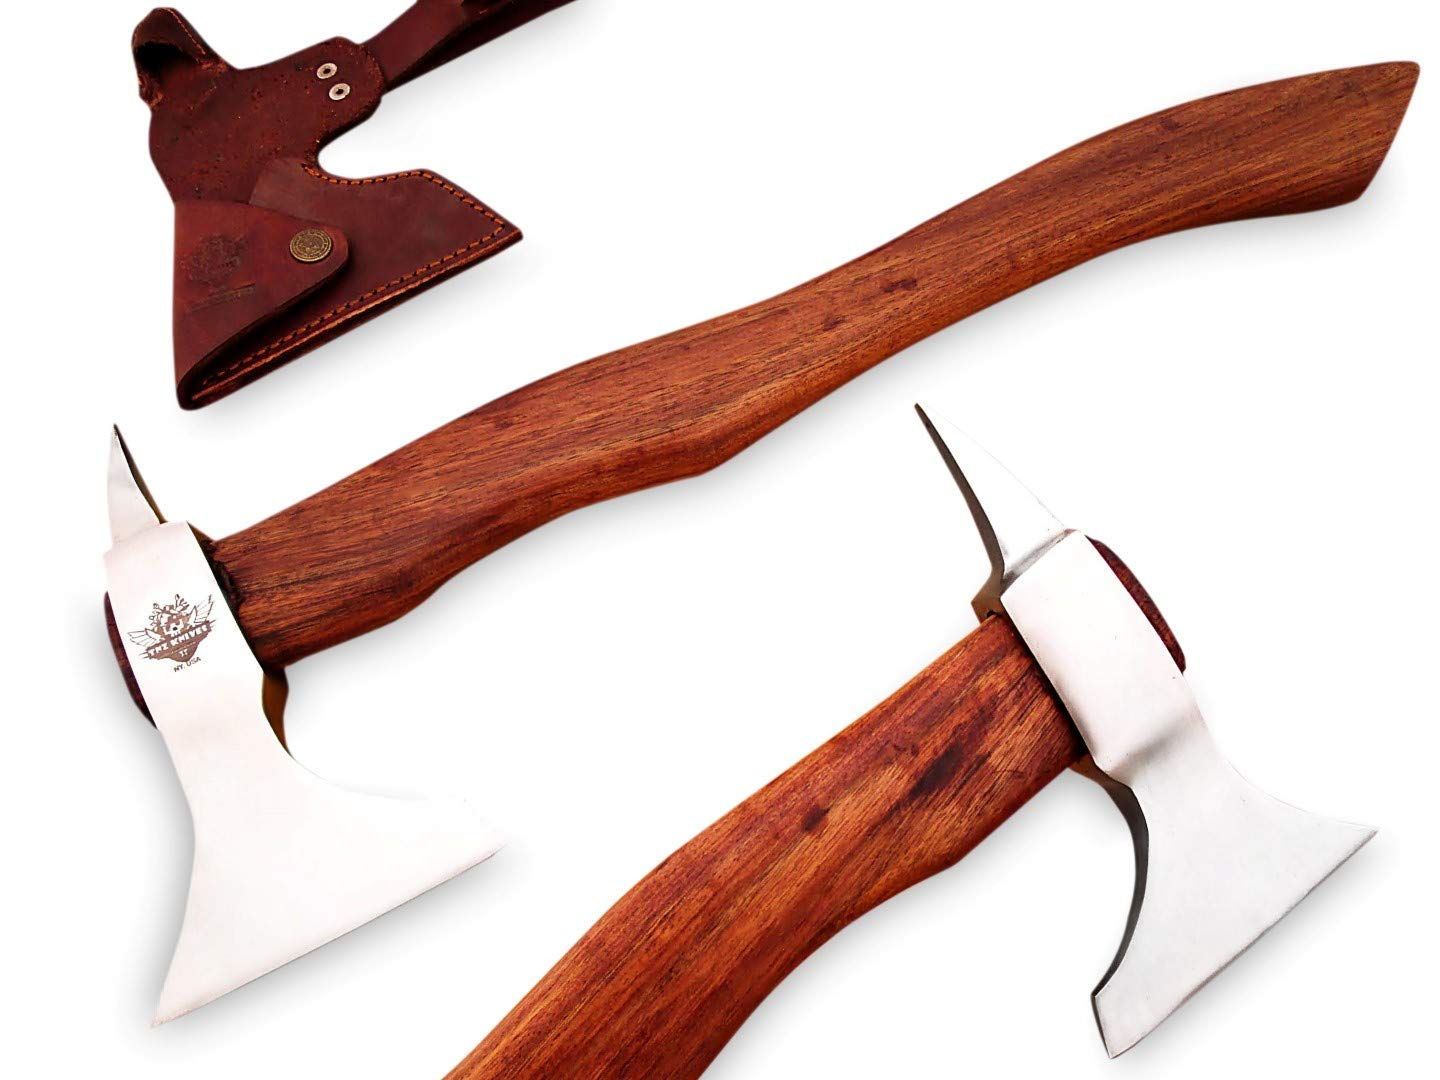 TNZ-616 High Carbon Axe 18 Long Hunting Camping Axe High Carbon Hatchet Viking Long Bearded Axe Leather Cover TNZ Hand Made High Carbon Knives